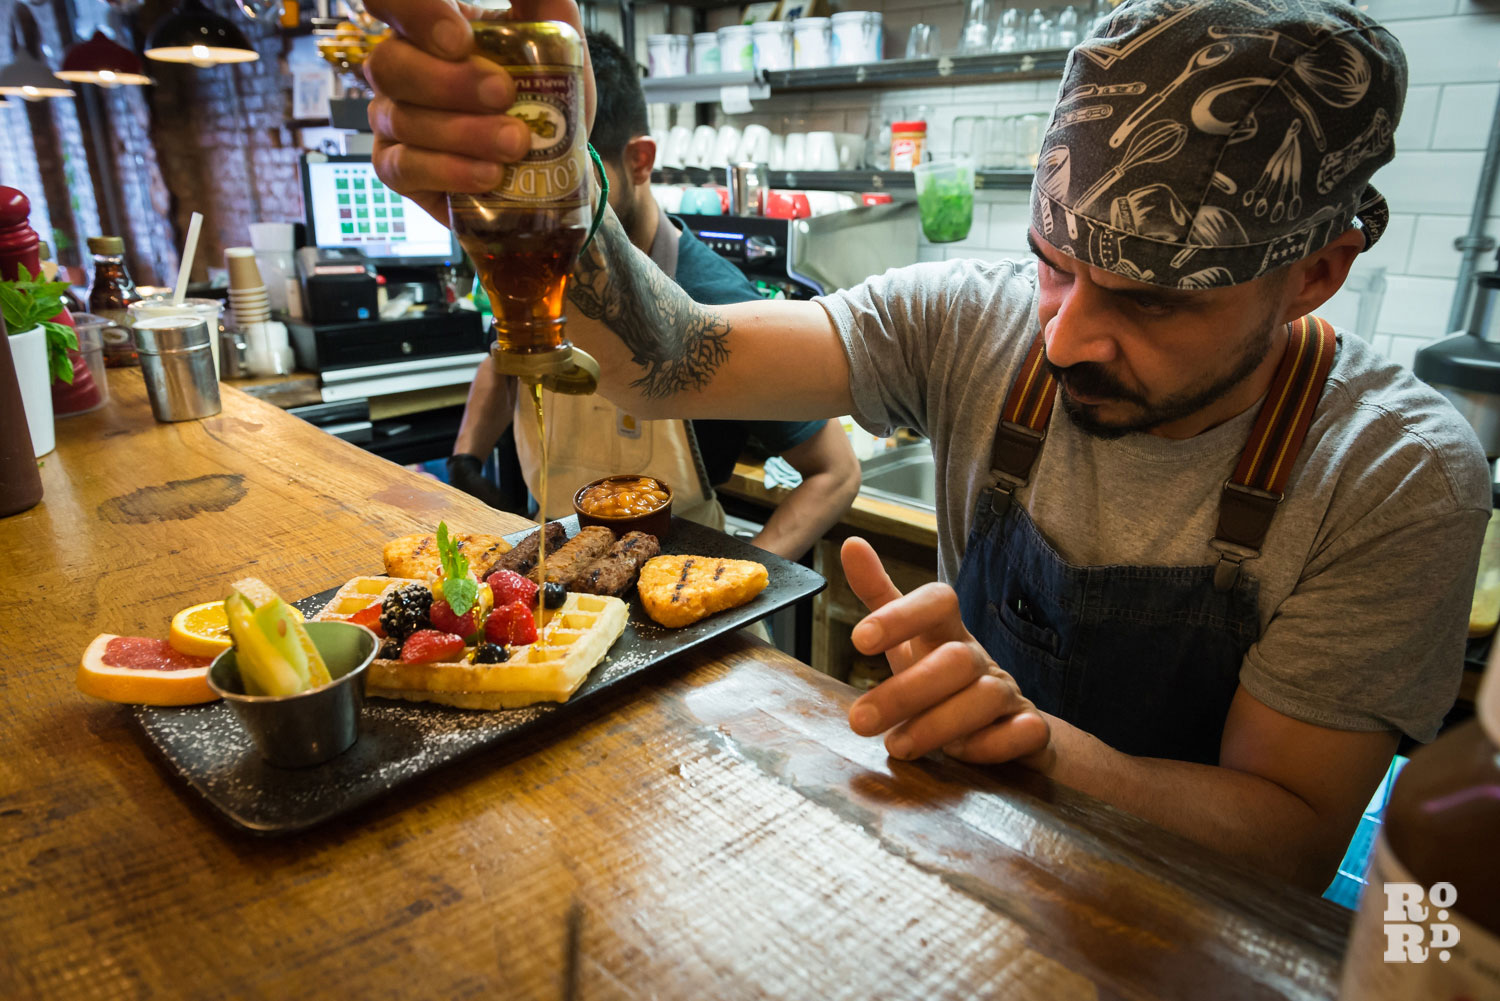 Chef makes brunch cafe east roman road